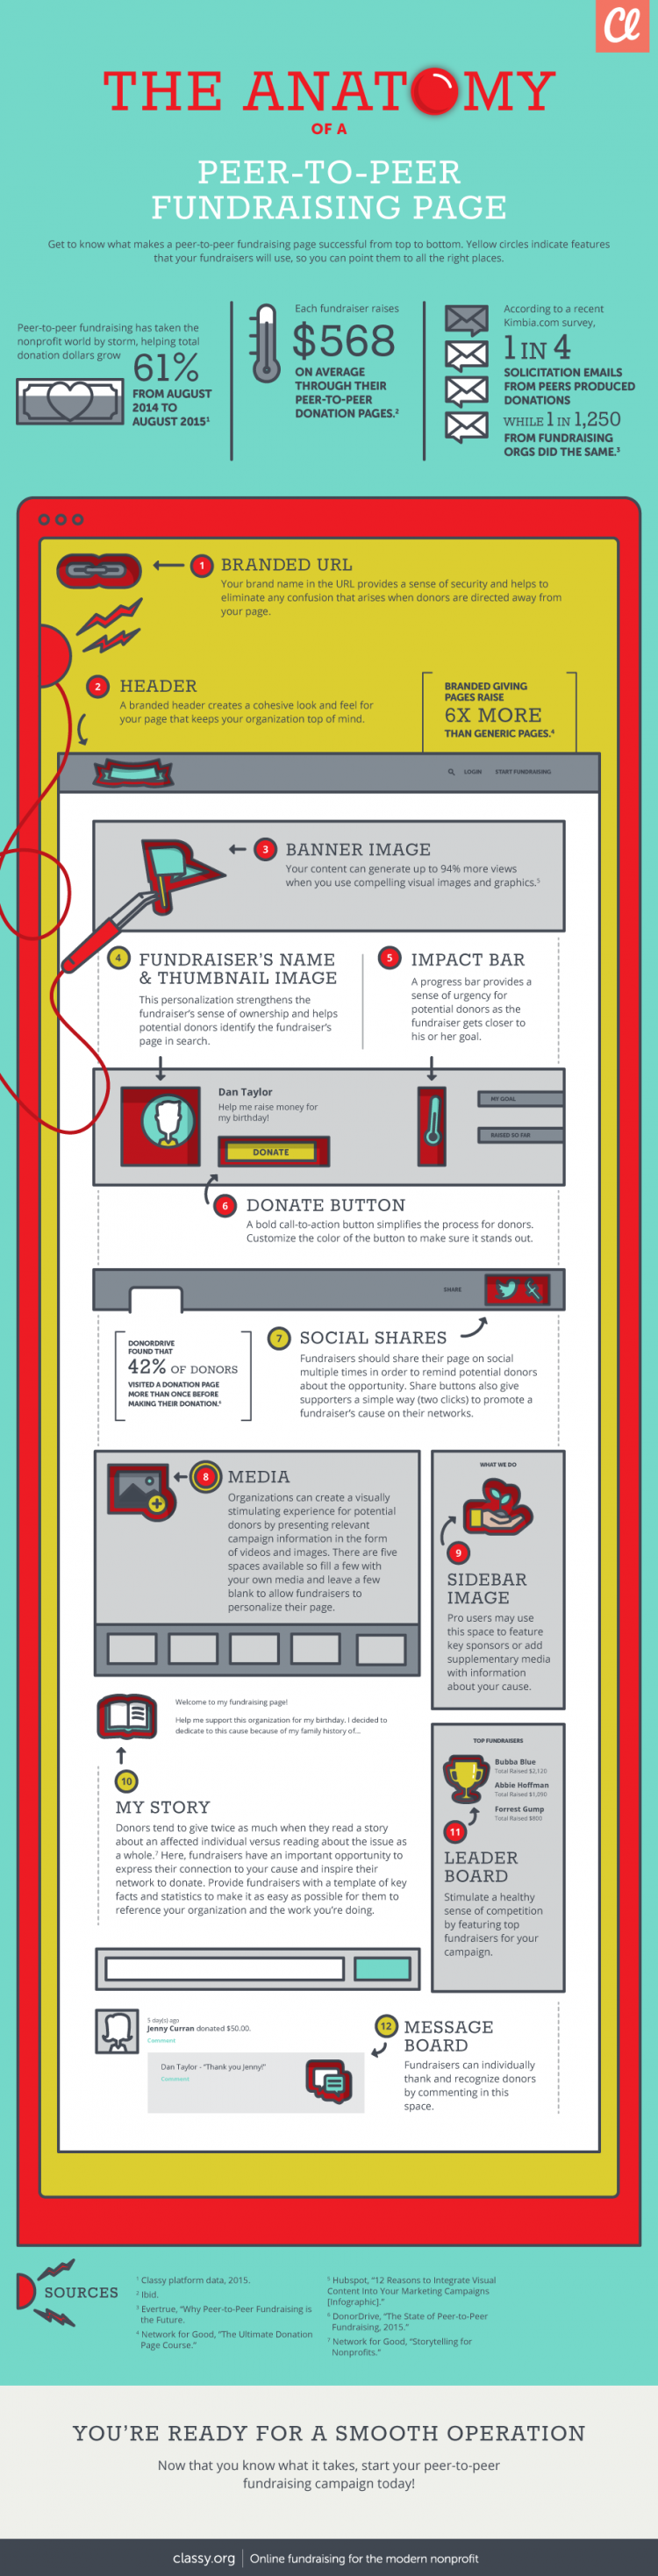 Anatomy of Peer-to-Peer Fundraising Infographic